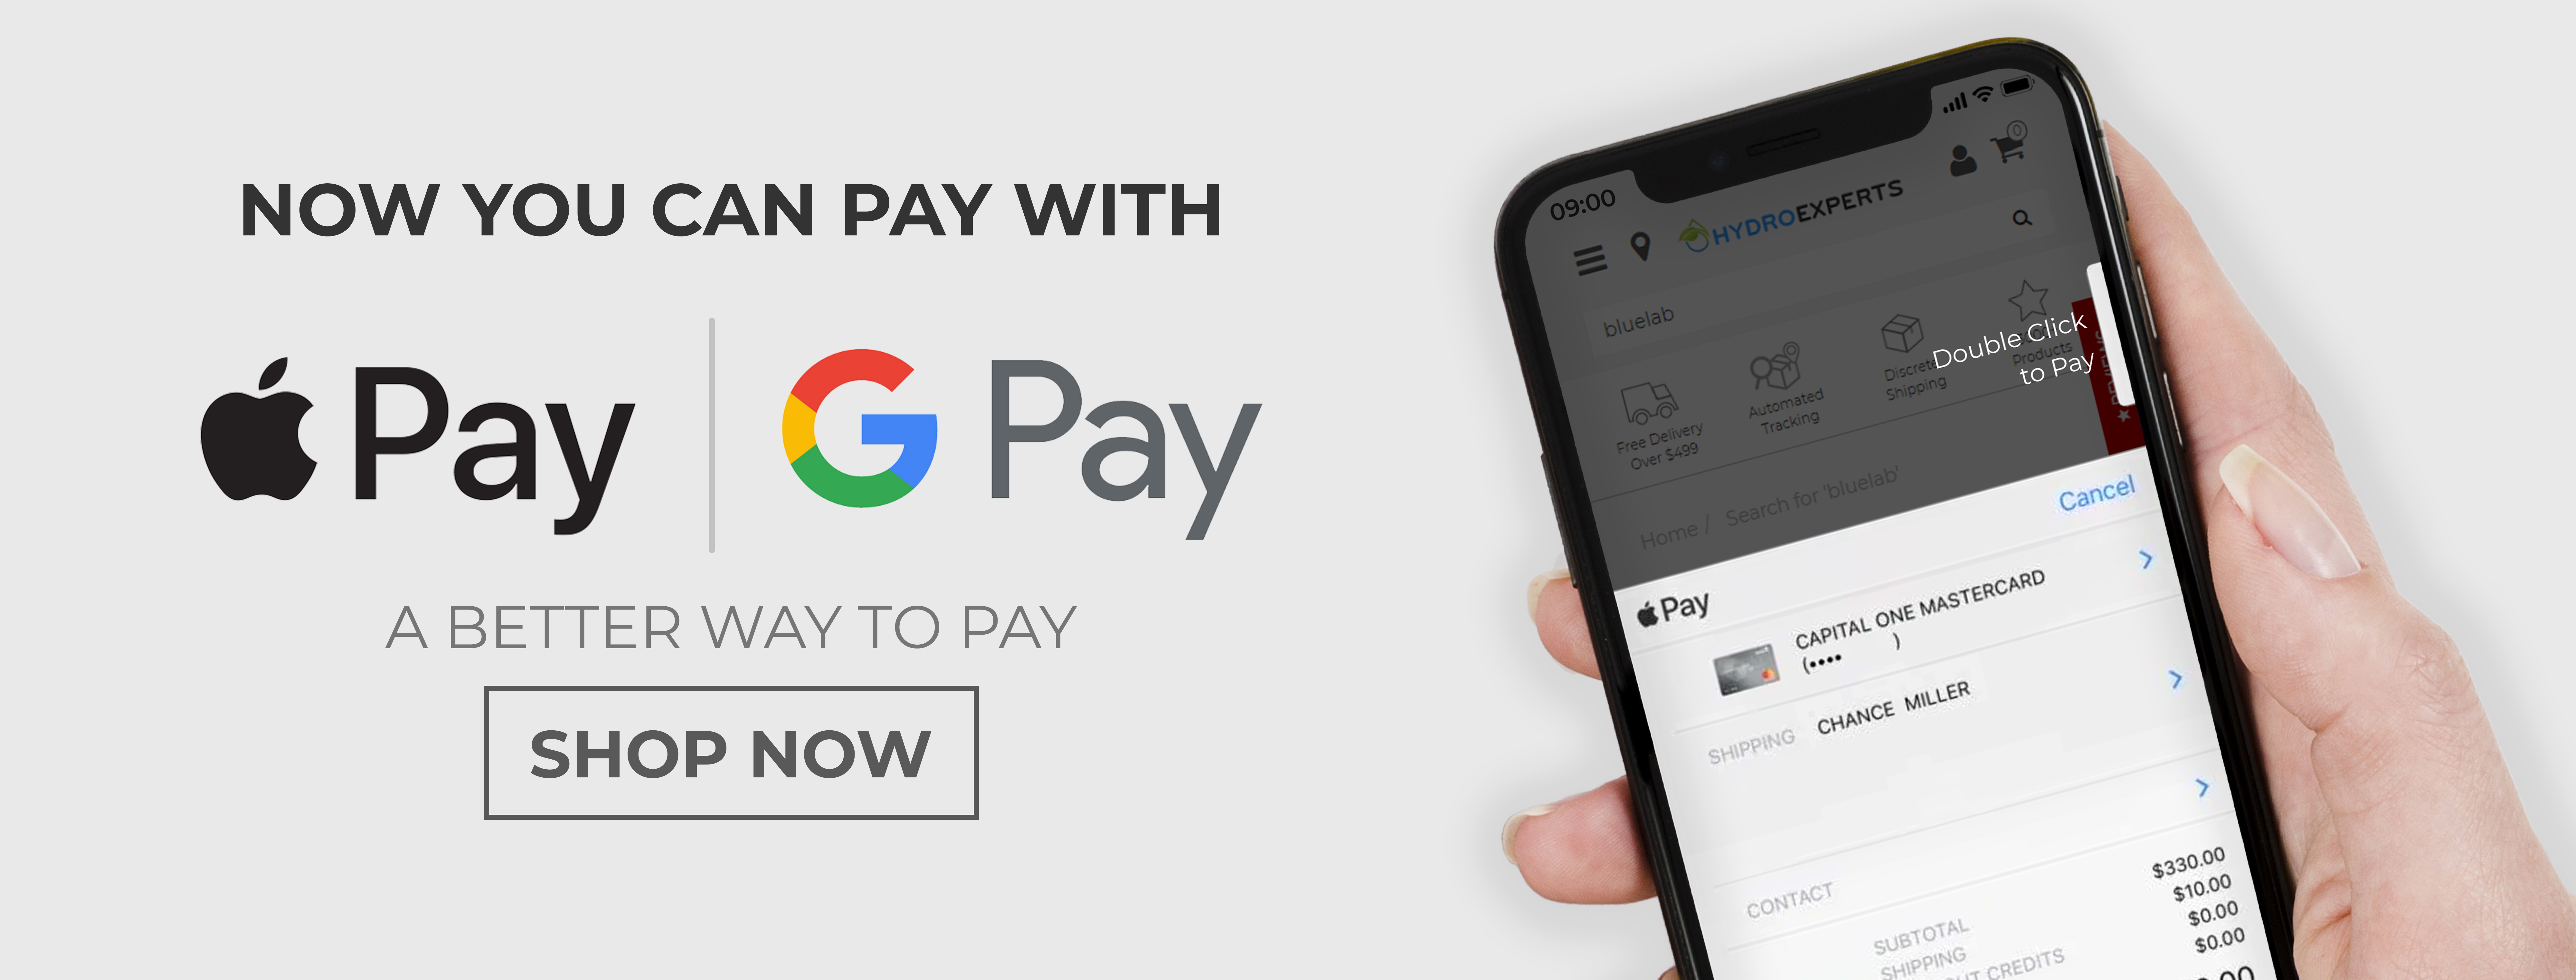 Apple pay & Google Pay Available